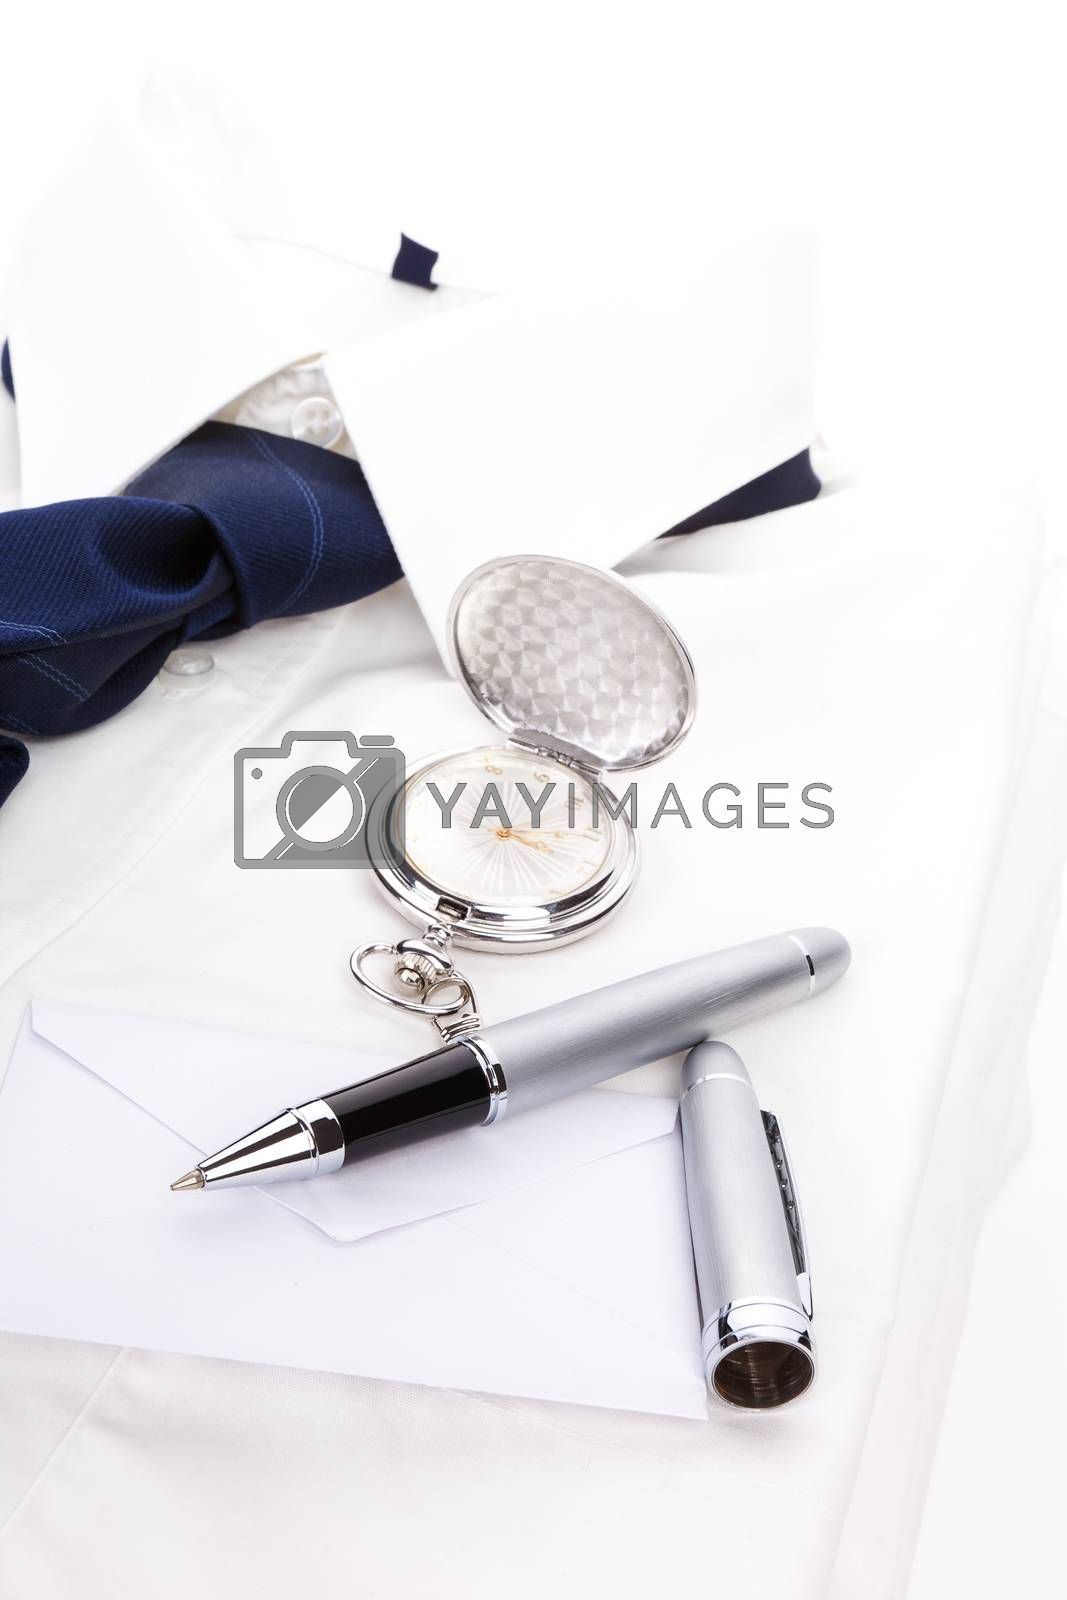 Luxurious business still life with white dress shirt, blue tie, pen, envelope and silver pocket watch. Business concept.